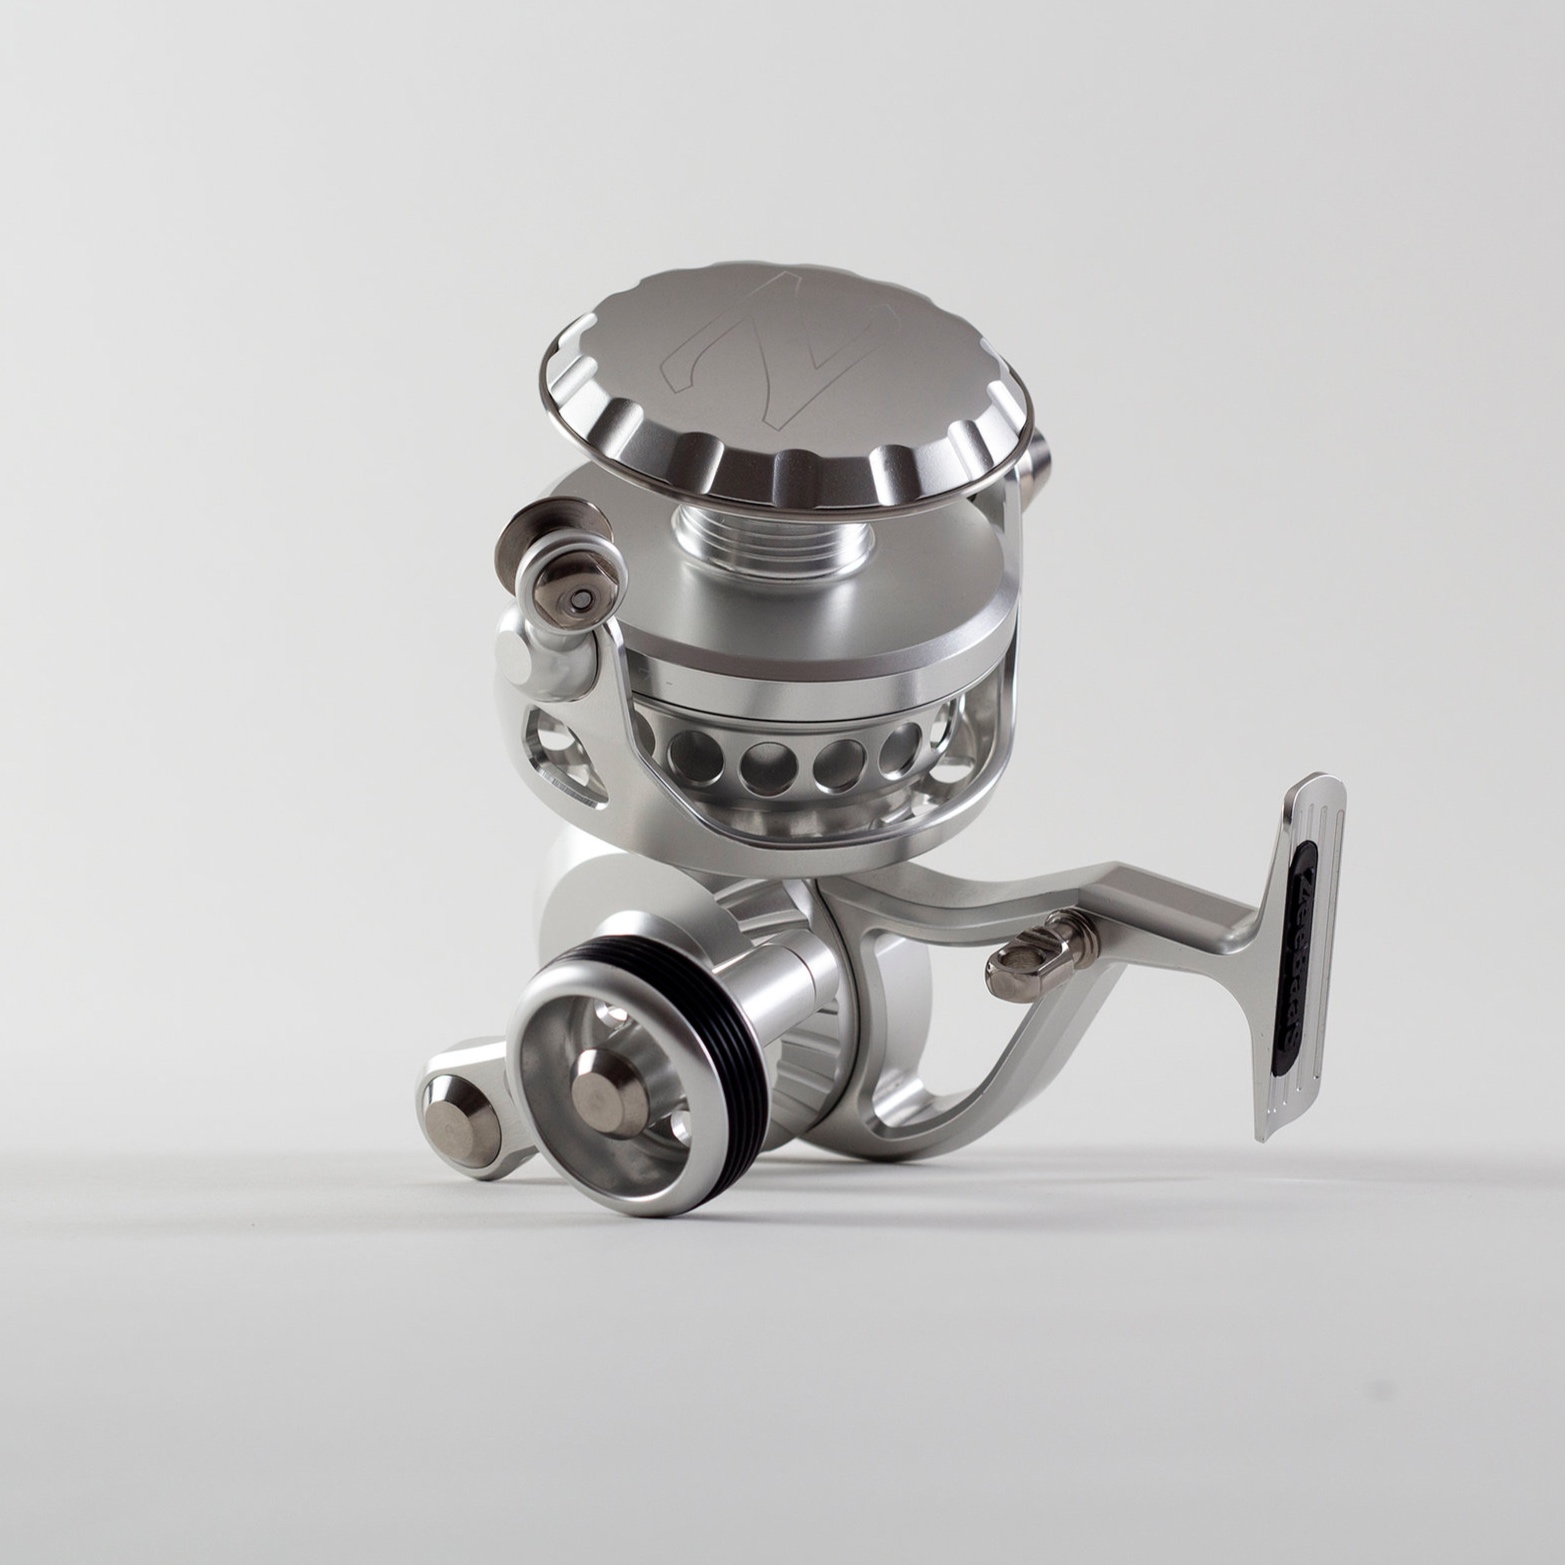 "ZeeBaaS ZX-27 - The ZX-27 is our largest that is perfect for the surfcaster who's tossing a long rod from shore, or the off-shore fisherman seeking big-game. Like all of our reels, the ZX-27 is fully sealed and completely waterproof. We offer the ZX-27 in black, silver or a combination of black and silver which we refer to as our tuxedo edition. Custom colors and personal engraving are also available for an additional charges. Contact us for details.Our ZX-27 DeliversSpool Diameter: 2.75""Weight: 22.4 ozGear Ratio: 4.75:1Capacity: Mono: 380/20 - Braid: 500/50Retrieve: 39.5"" per turnMax Drag: 40lbsAble to be self-maintained or factory maintained.Starting at $989.00"